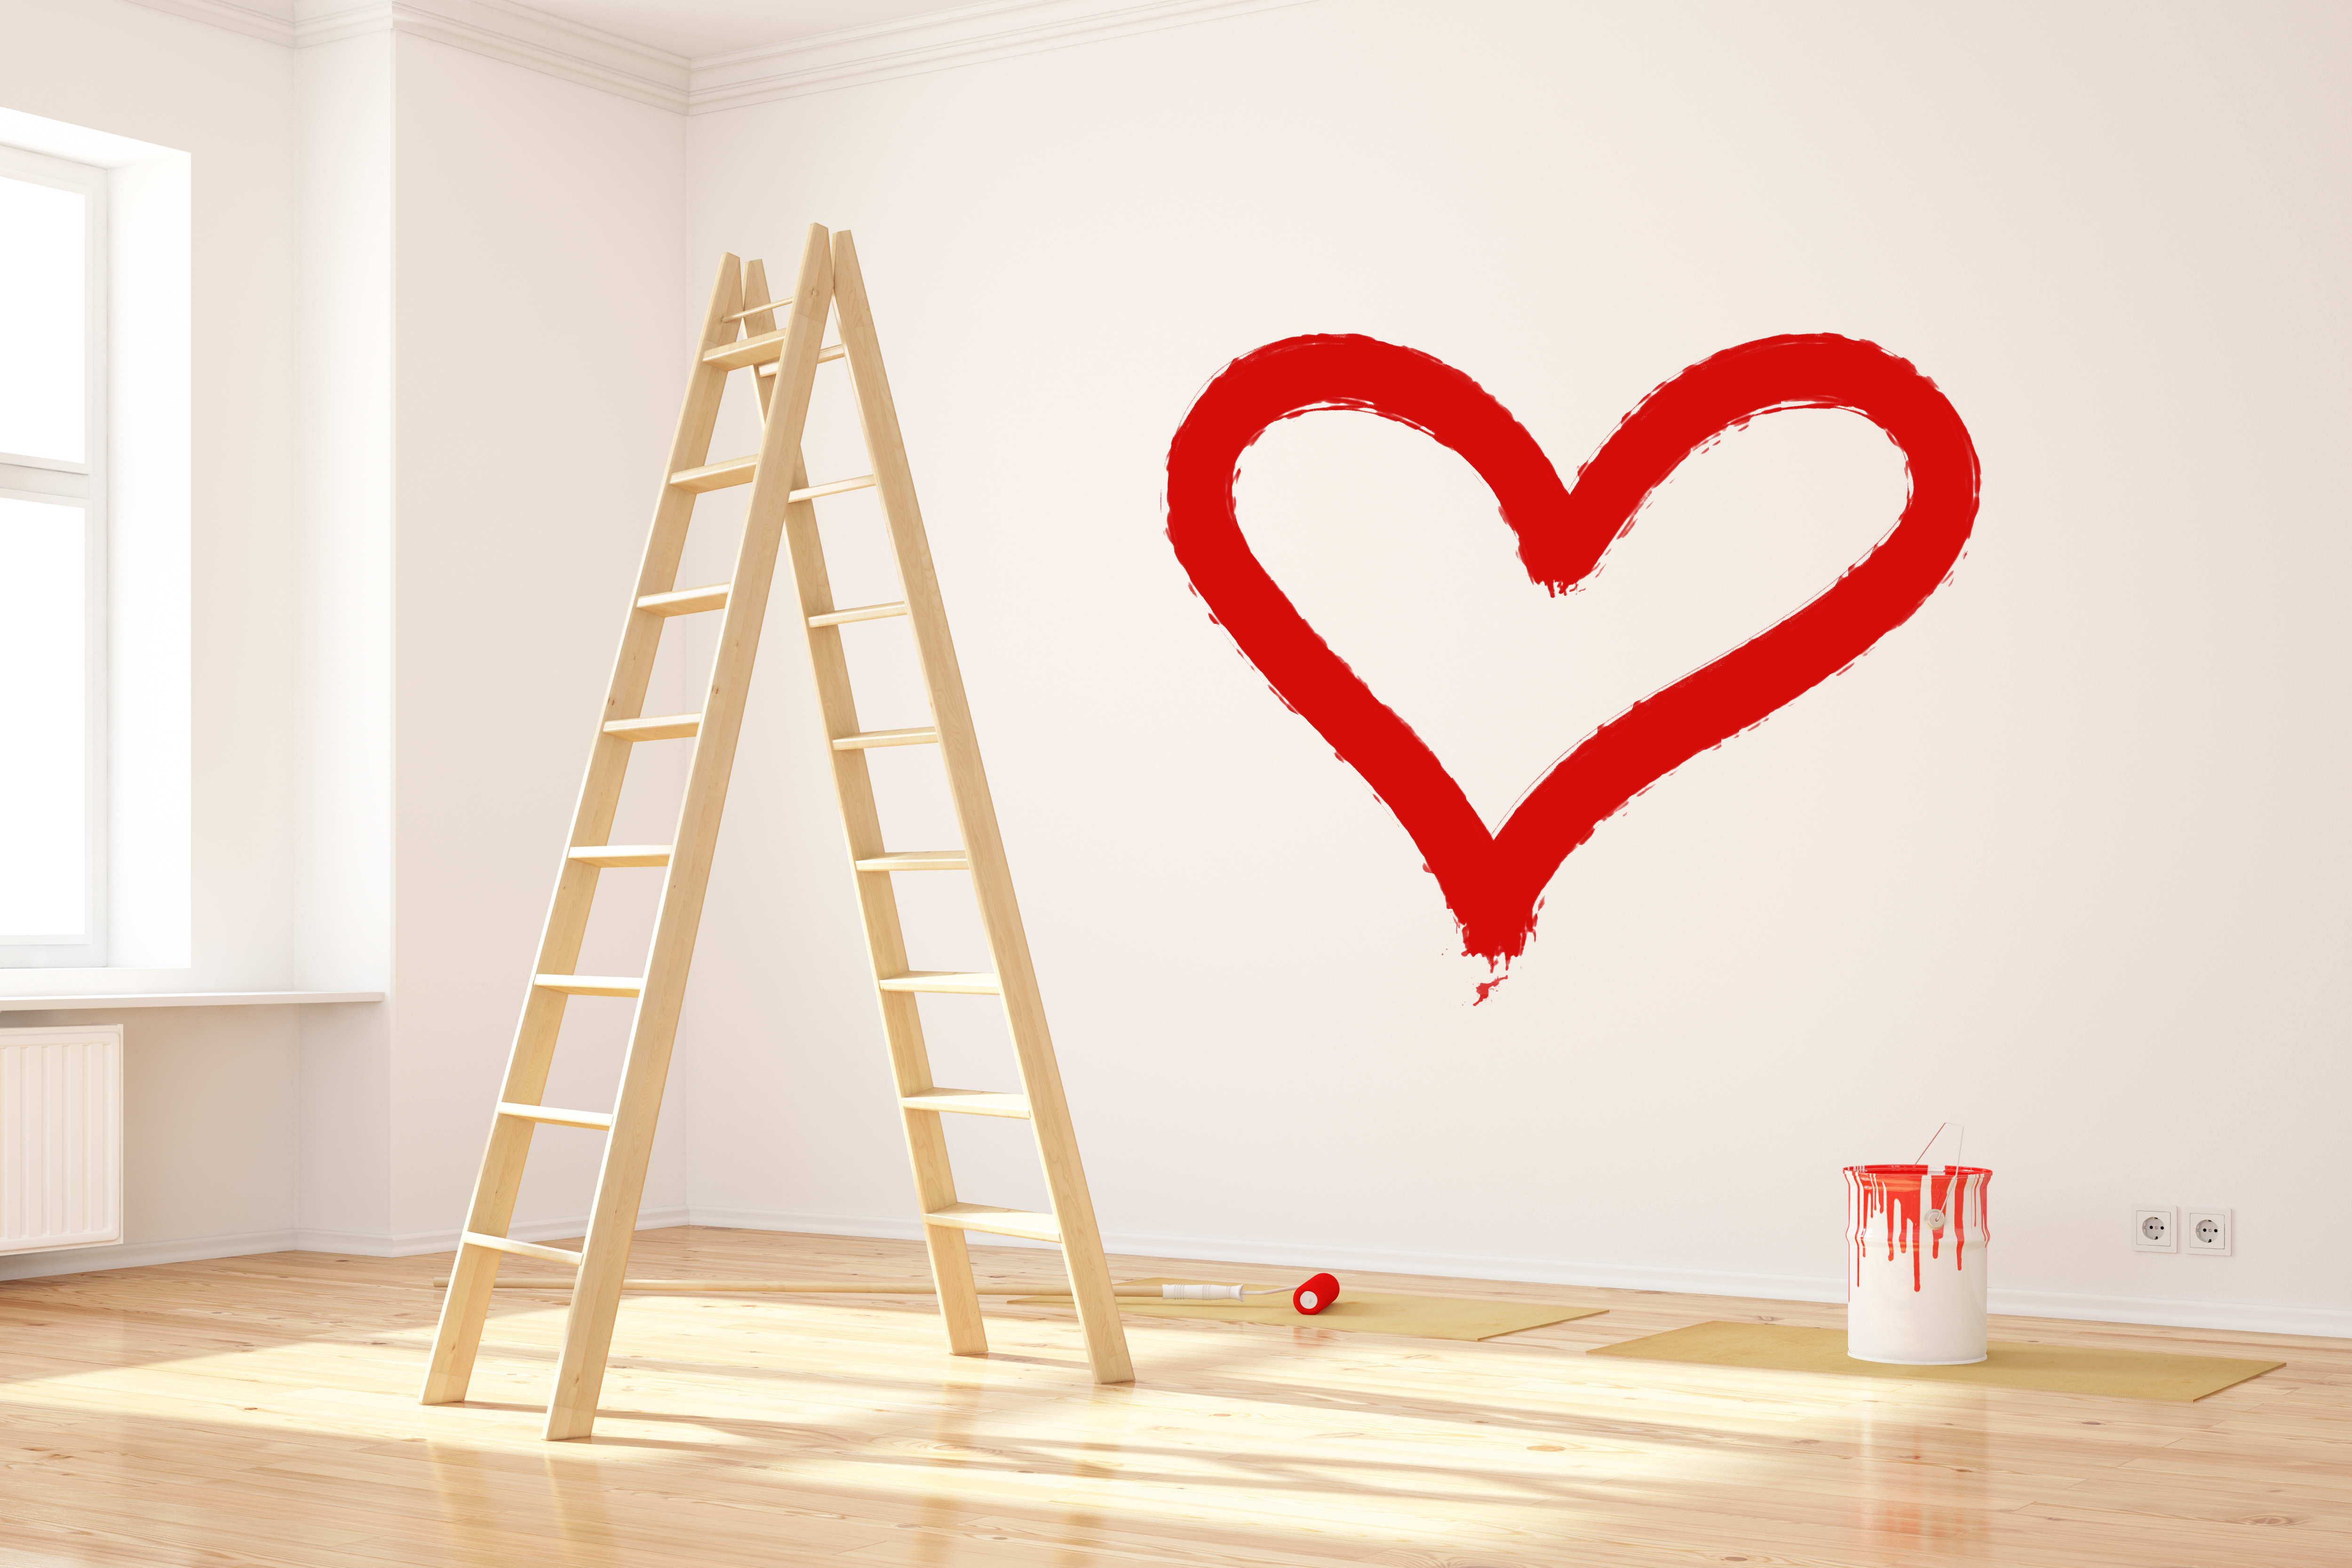 heart_and_ladder